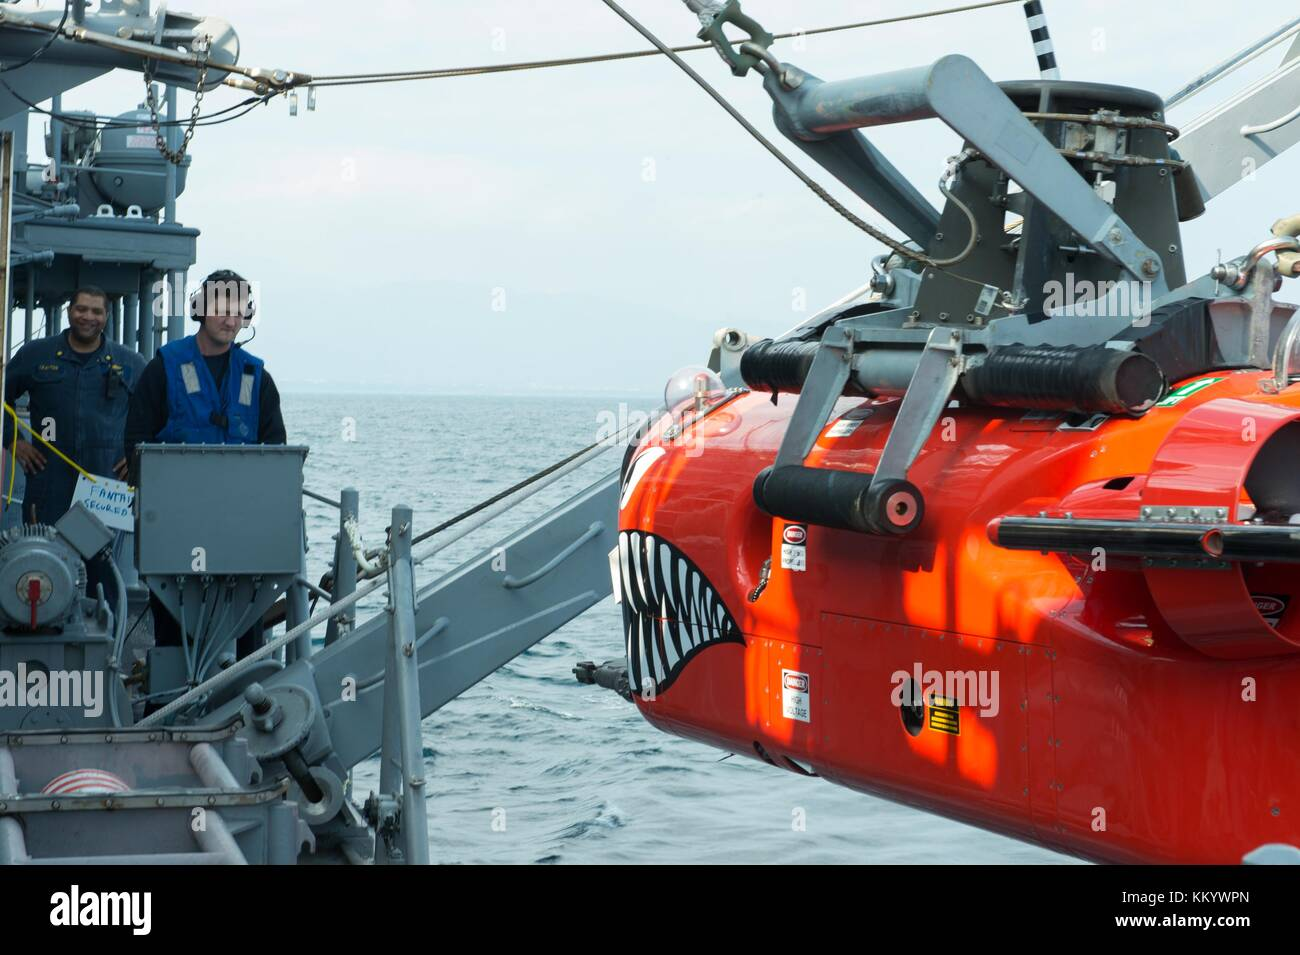 U.S. Navy sailors lower a mine neutralization vehicle into the water from the U.S. Navy Avenger-class mine countermeasures Stock Photo